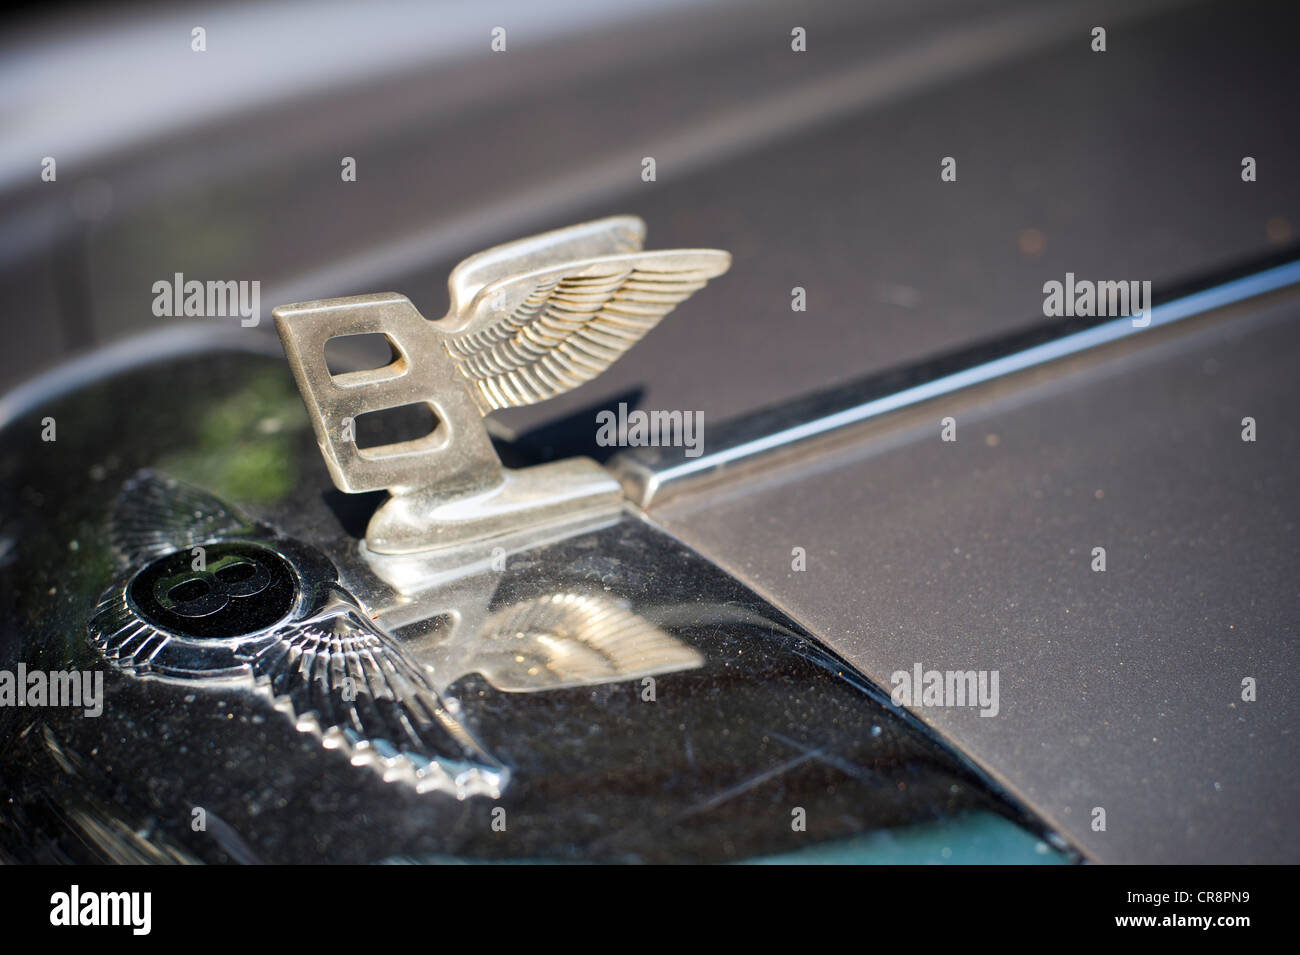 A Bentley Luxury Car Hood Ornament Is See On A Bentley Parked On The